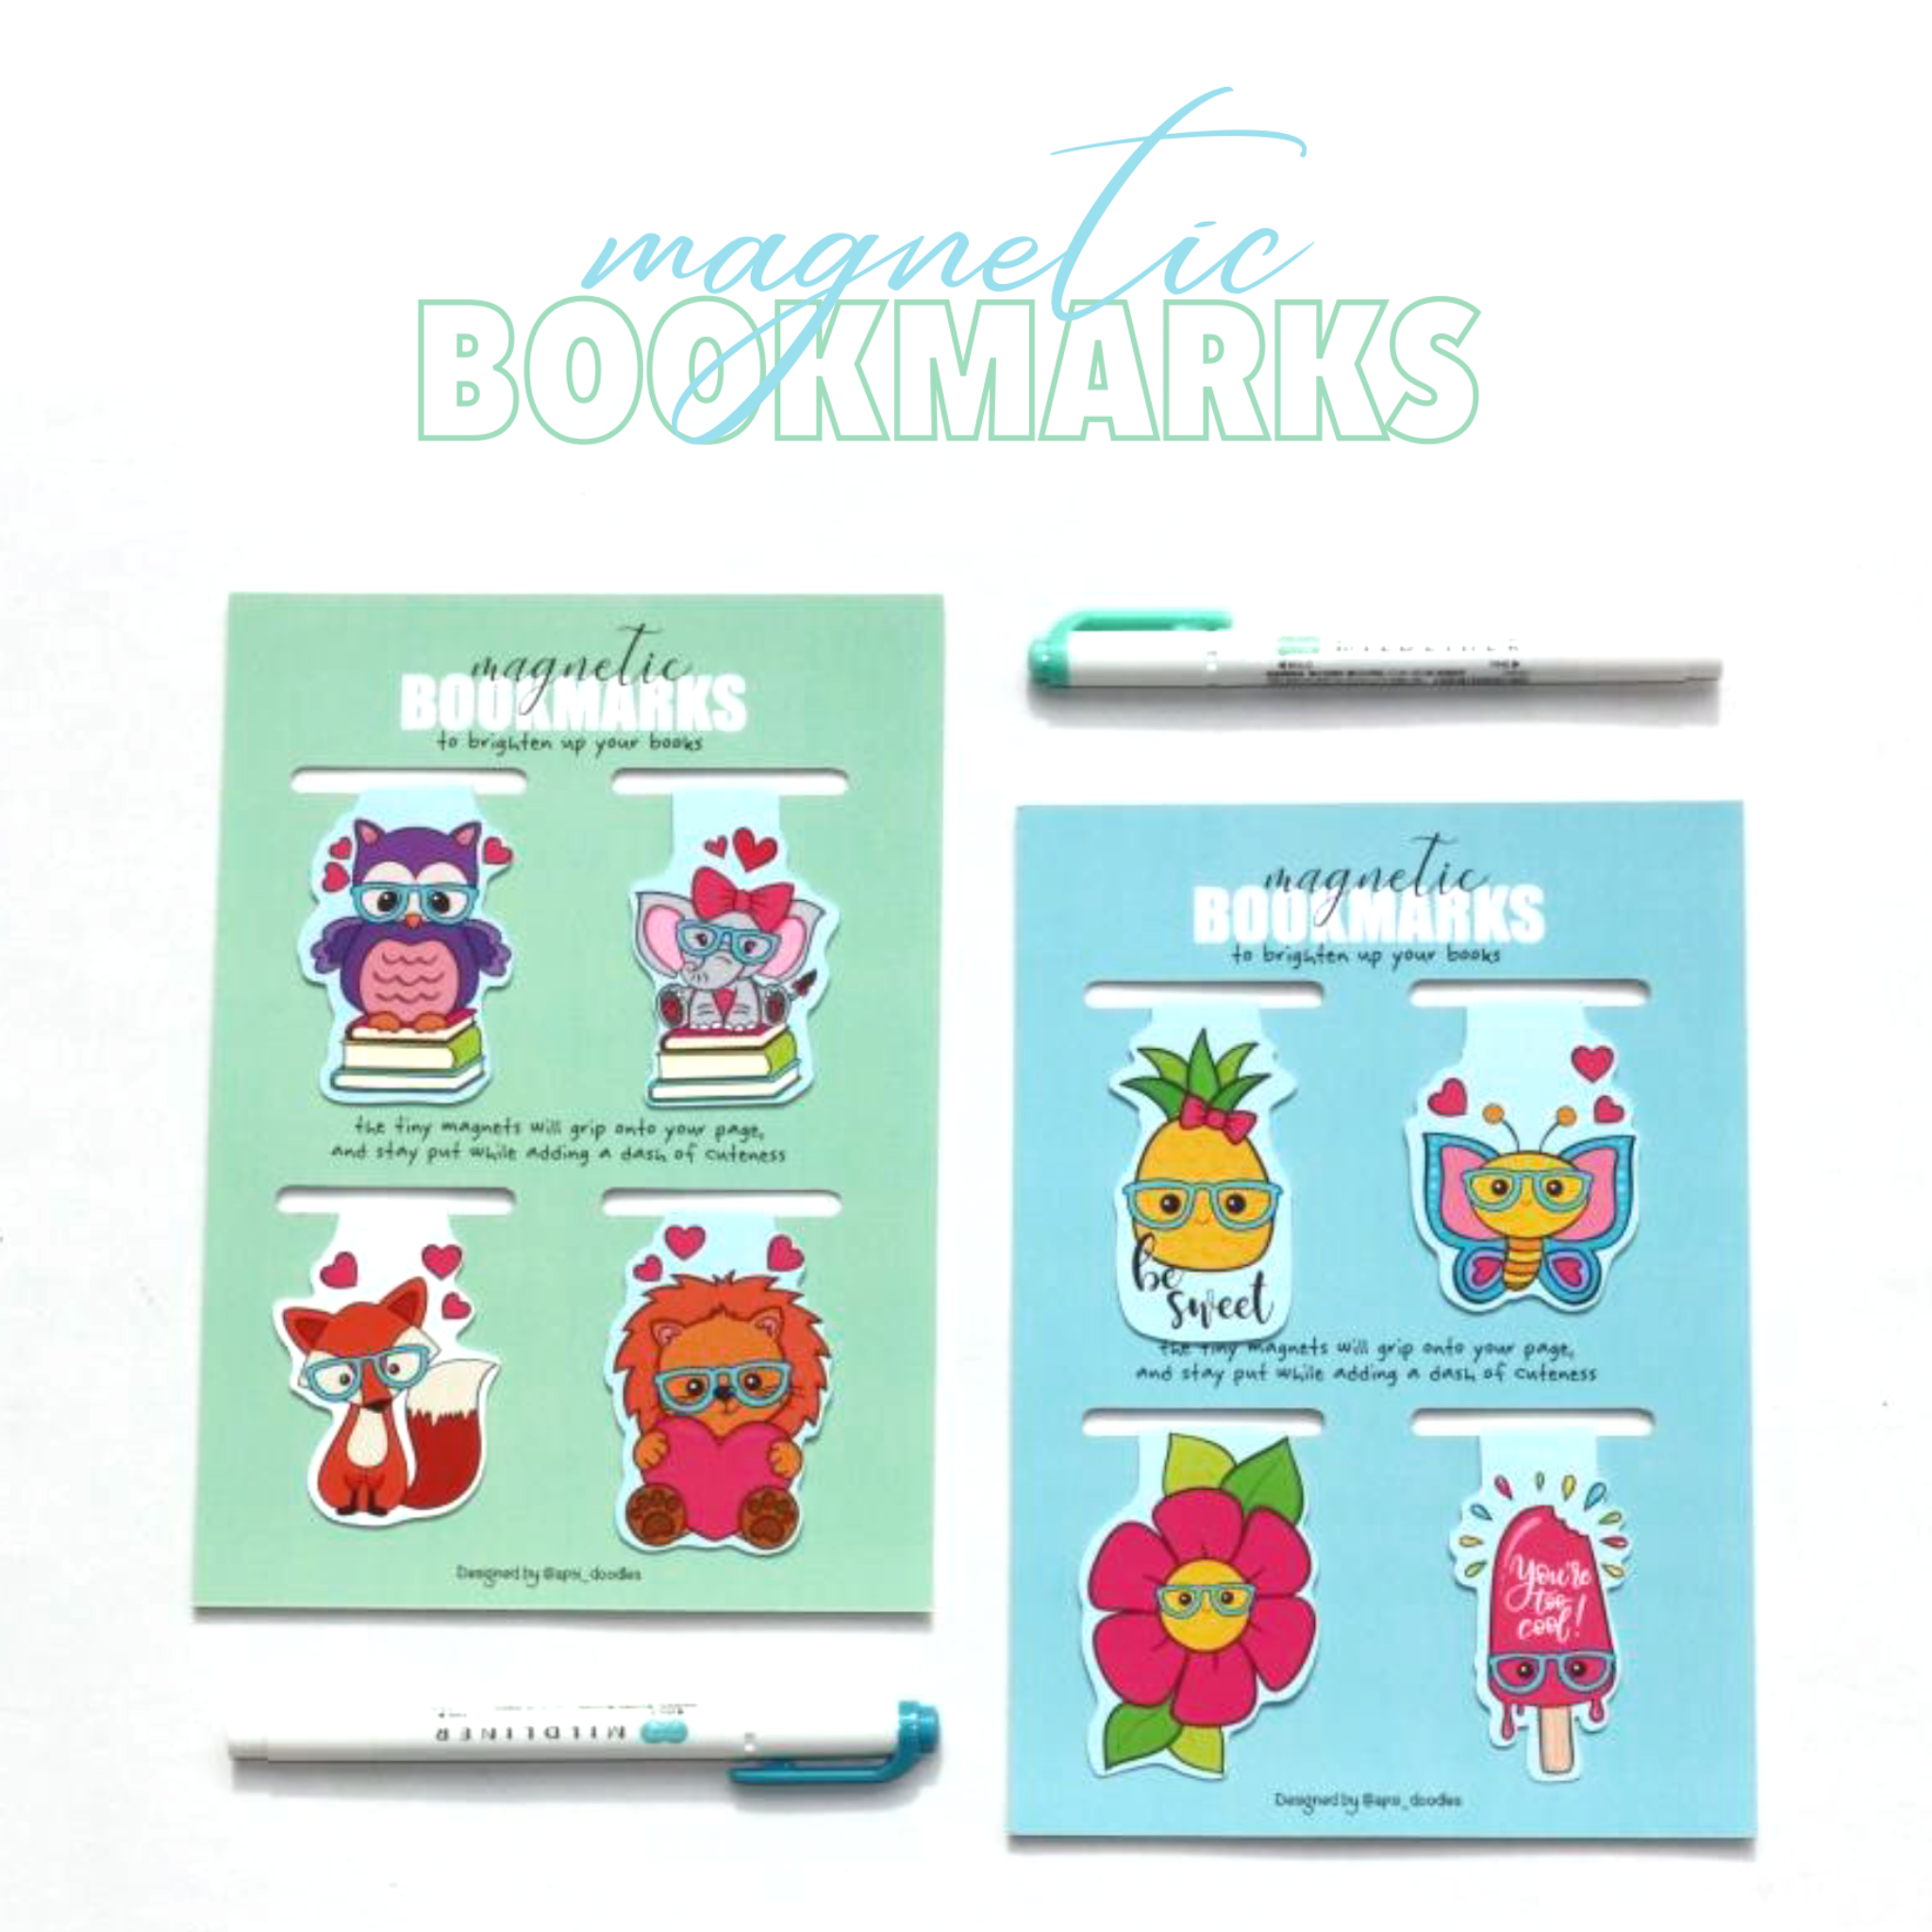 Magnetic bookmarks - Set 2